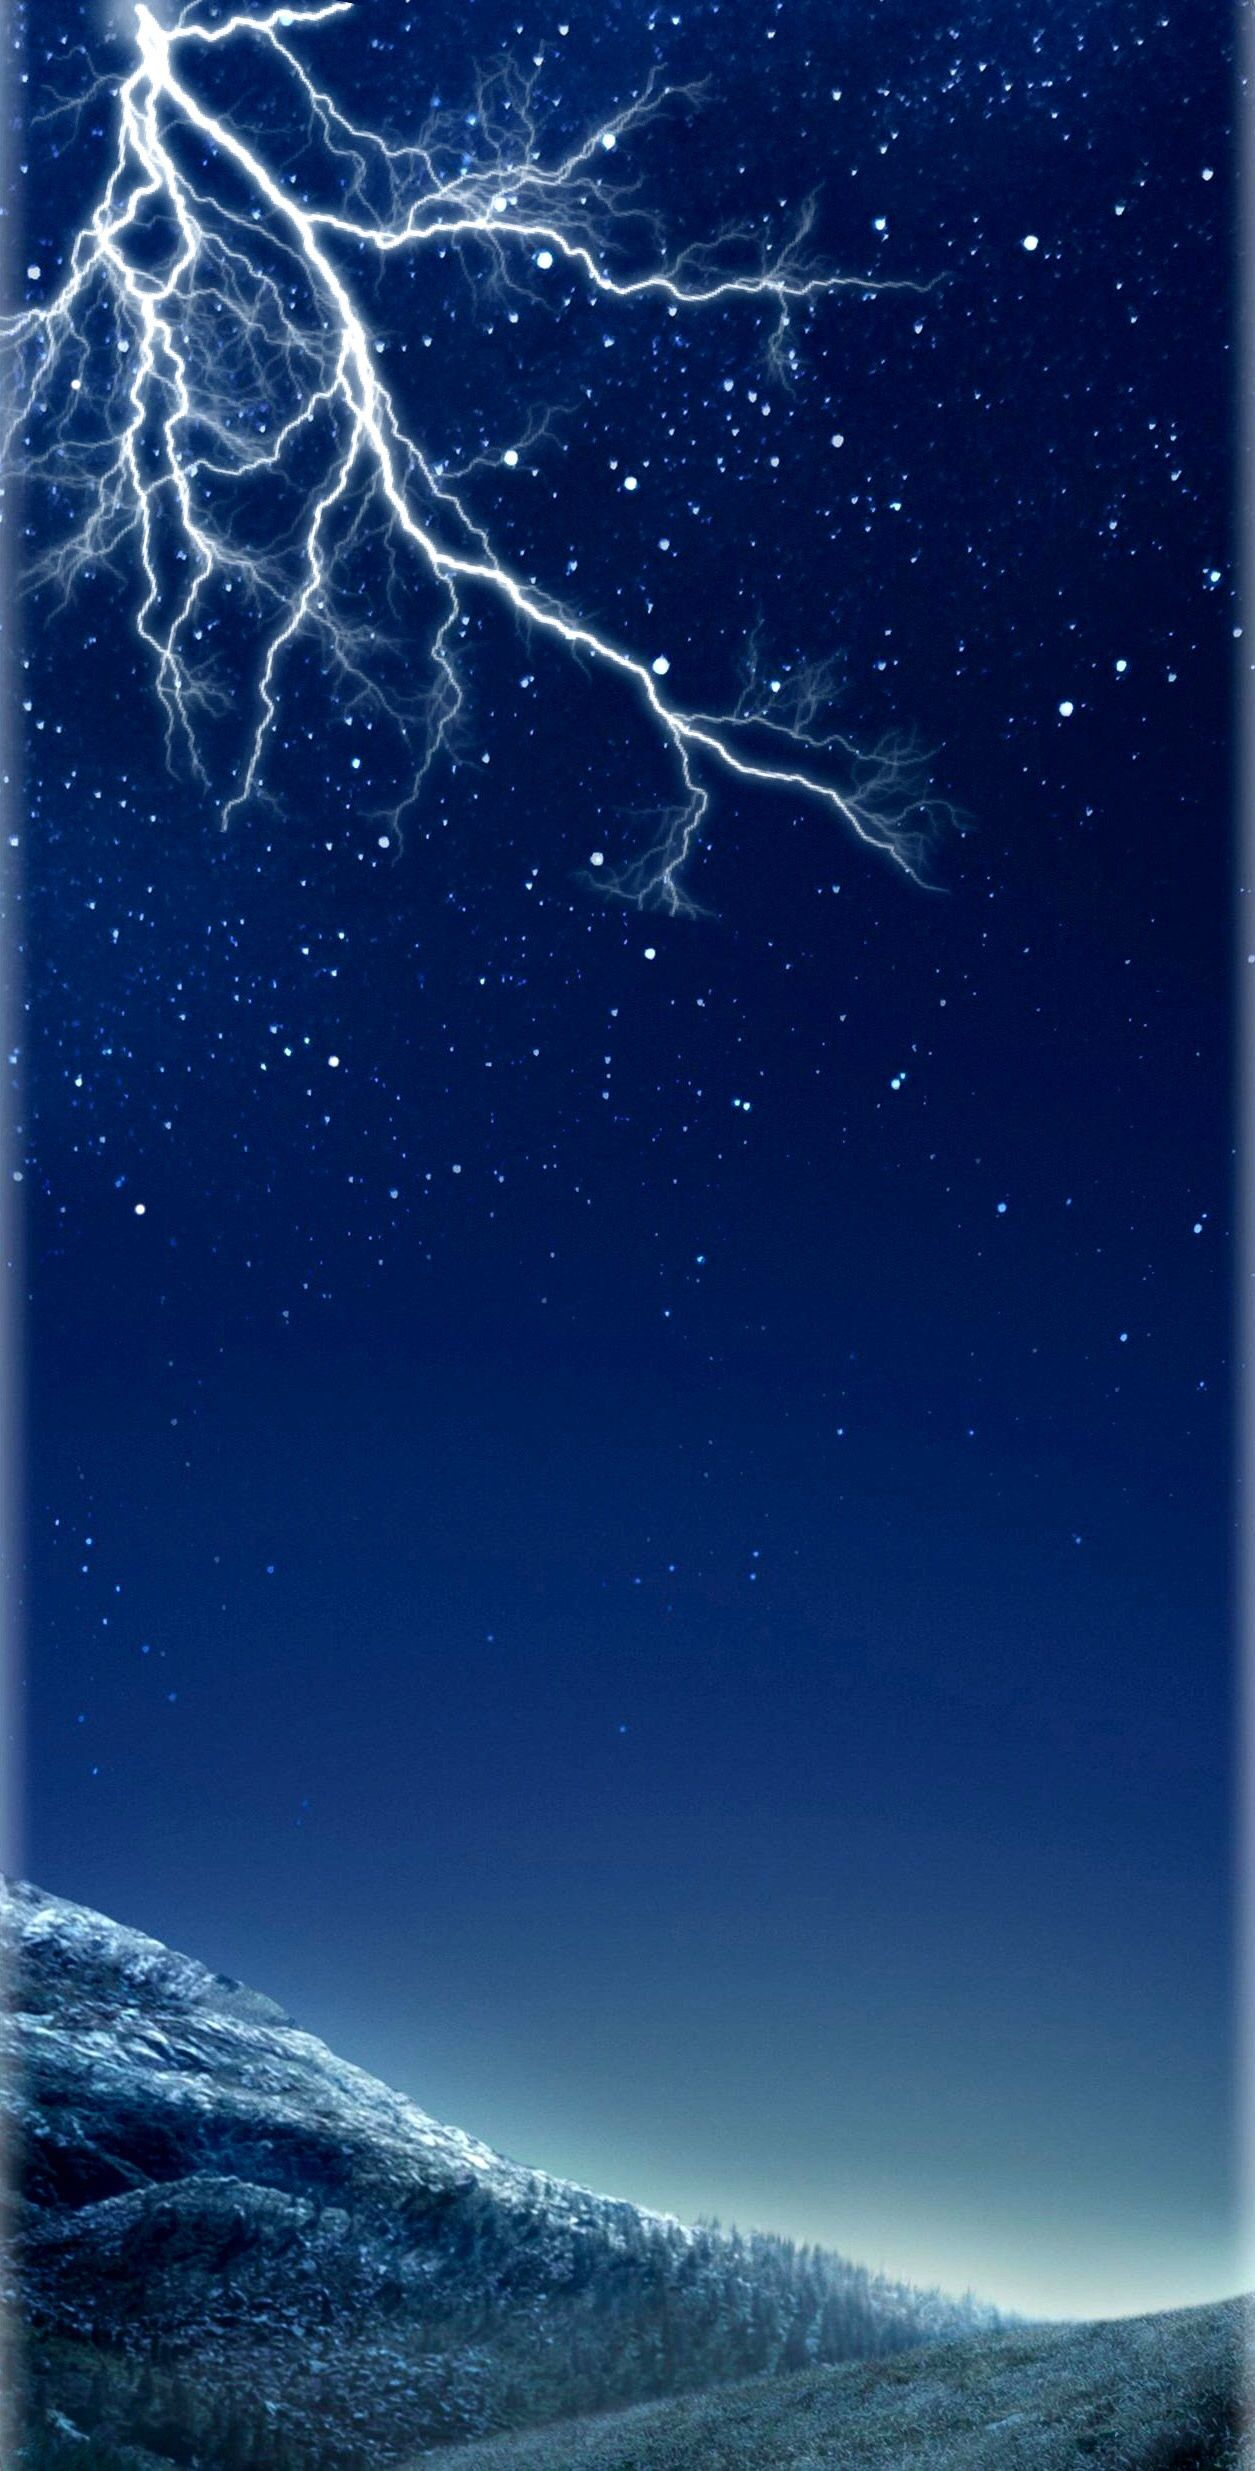 Dark Blue Storm Lightening Wallpaper Galaxy Beauty Nature Night Sky Stars Samsung Galaxy S8 S8 Galaxy S8 Wallpaper Samsung Wallpaper S8 Wallpaper